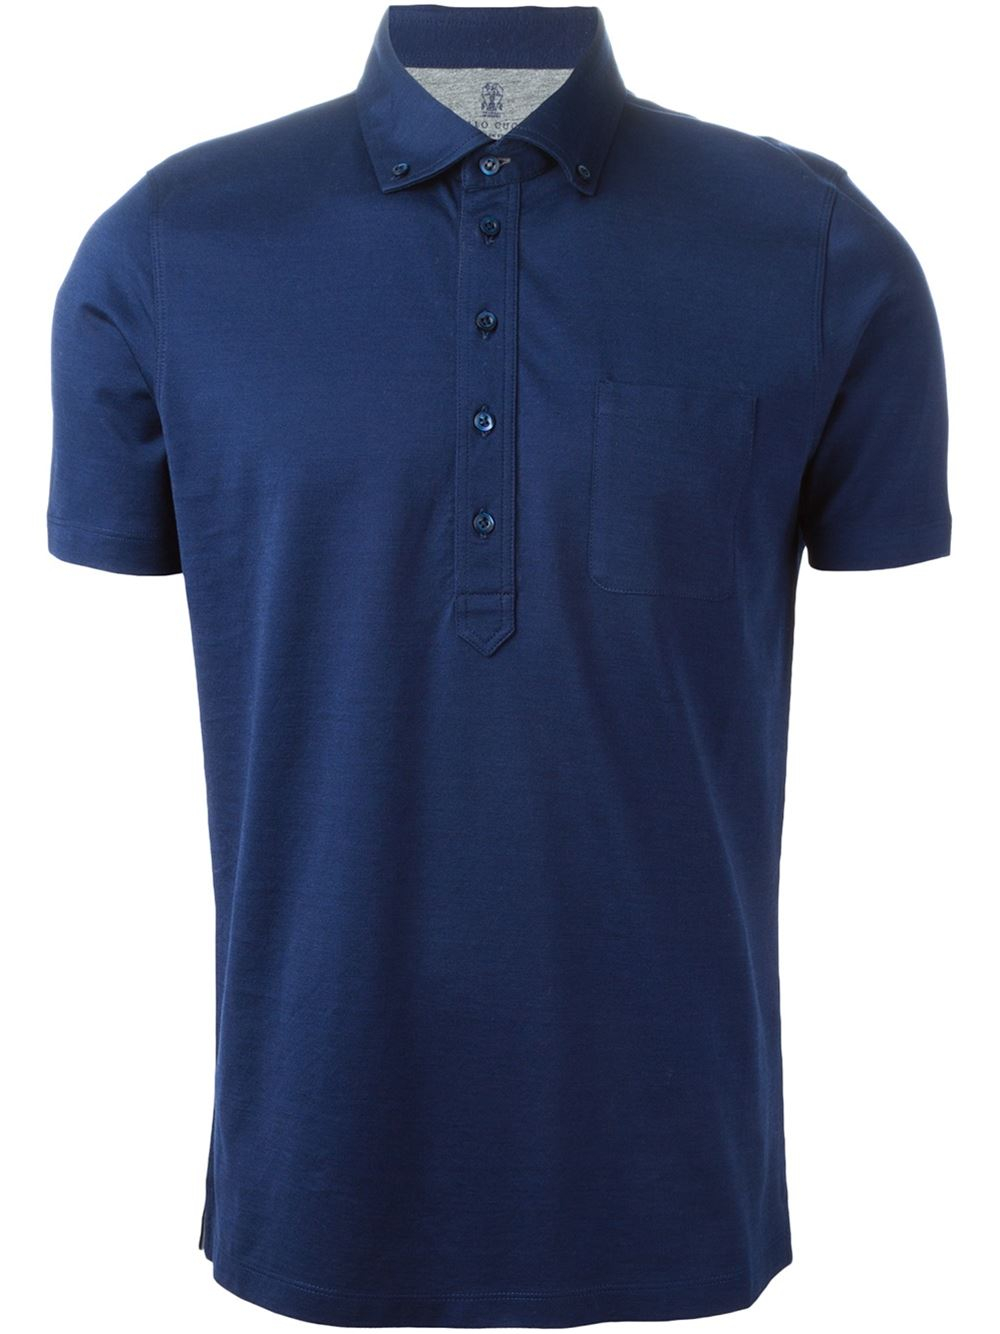 Brunello cucinelli button down polo shirt in blue for men for Polo shirts without buttons